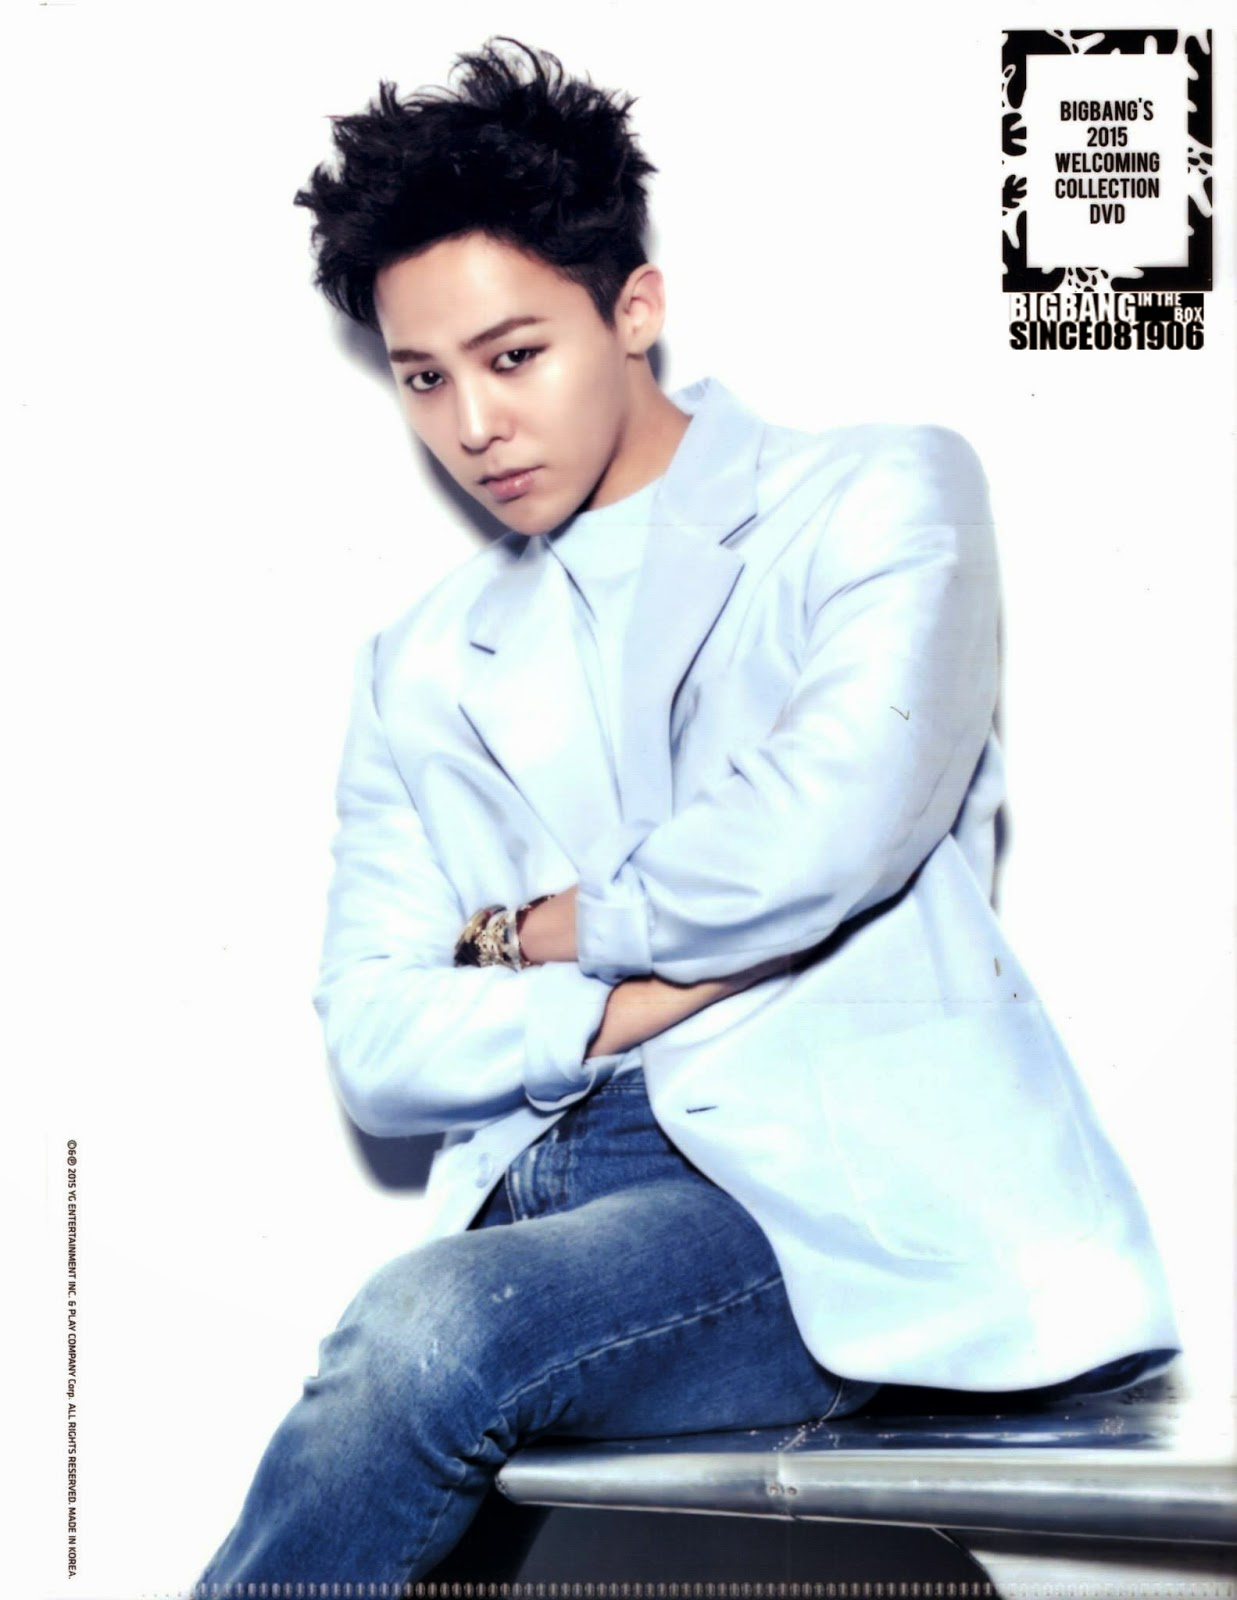 Scans: Big Bang's 2015 Welcoming Collection [PHOTOS]  Scans: Big Bang's 2015 Welcoming Collection [PHOTOS]  Scans: Big Bang's 2015 Welcoming Collection [PHOTOS]  Scans: Big Bang's 2015 Welcoming Collection [PHOTOS]  Scans: Big Bang's 2015 Welcoming Collection [PHOTOS]  Scans: Big Bang's 2015 Welcoming Collection [PHOTOS]  Scans: Big Bang's 2015 Welcoming Collection [PHOTOS]  Scans: Big Bang's 2015 Welcoming Collection [PHOTOS]  Scans: Big Bang's 2015 Welcoming Collection [PHOTOS]  Scans: Big Bang's 2015 Welcoming Collection [PHOTOS]  Scans: Big Bang's 2015 Welcoming Collection [PHOTOS]  Scans: Big Bang's 2015 Welcoming Collection [PHOTOS]  Scans: Big Bang's 2015 Welcoming Collection [PHOTOS]  Scans: Big Bang's 2015 Welcoming Collection [PHOTOS]  Scans: Big Bang's 2015 Welcoming Collection [PHOTOS]  Scans: Big Bang's 2015 Welcoming Collection [PHOTOS]  Scans: Big Bang's 2015 Welcoming Collection [PHOTOS]  Scans: Big Bang's 2015 Welcoming Collection [PHOTOS]  Scans: Big Bang's 2015 Welcoming Collection [PHOTOS]  Scans: Big Bang's 2015 Welcoming Collection [PHOTOS]  Scans: Big Bang's 2015 Welcoming Collection [PHOTOS]  Scans: Big Bang's 2015 Welcoming Collection [PHOTOS]  Scans: Big Bang's 2015 Welcoming Collection [PHOTOS]  Scans: Big Bang's 2015 Welcoming Collection [PHOTOS]  Scans: Big Bang's 2015 Welcoming Collection [PHOTOS]  Scans: Big Bang's 2015 Welcoming Collection [PHOTOS]  Scans: Big Bang's 2015 Welcoming Collection [PHOTOS]  Scans: Big Bang's 2015 Welcoming Collection [PHOTOS]  Scans: Big Bang's 2015 Welcoming Collection [PHOTOS]  Scans: Big Bang's 2015 Welcoming Collection [PHOTOS]  Scans: Big Bang's 2015 Welcoming Collection [PHOTOS]